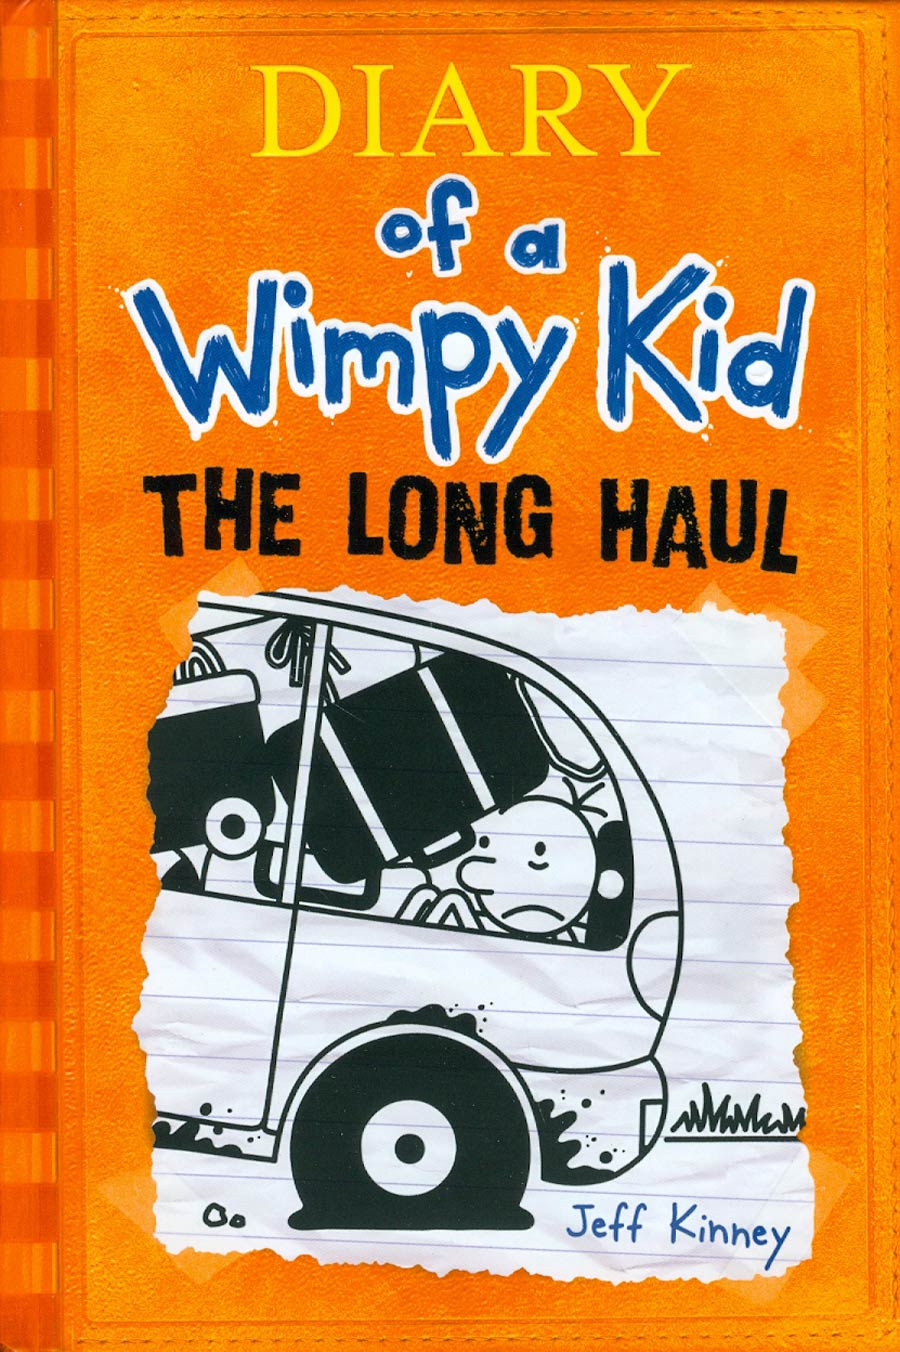 Diary Of A Wimpy Kid Vol 9 The Long Haul HC